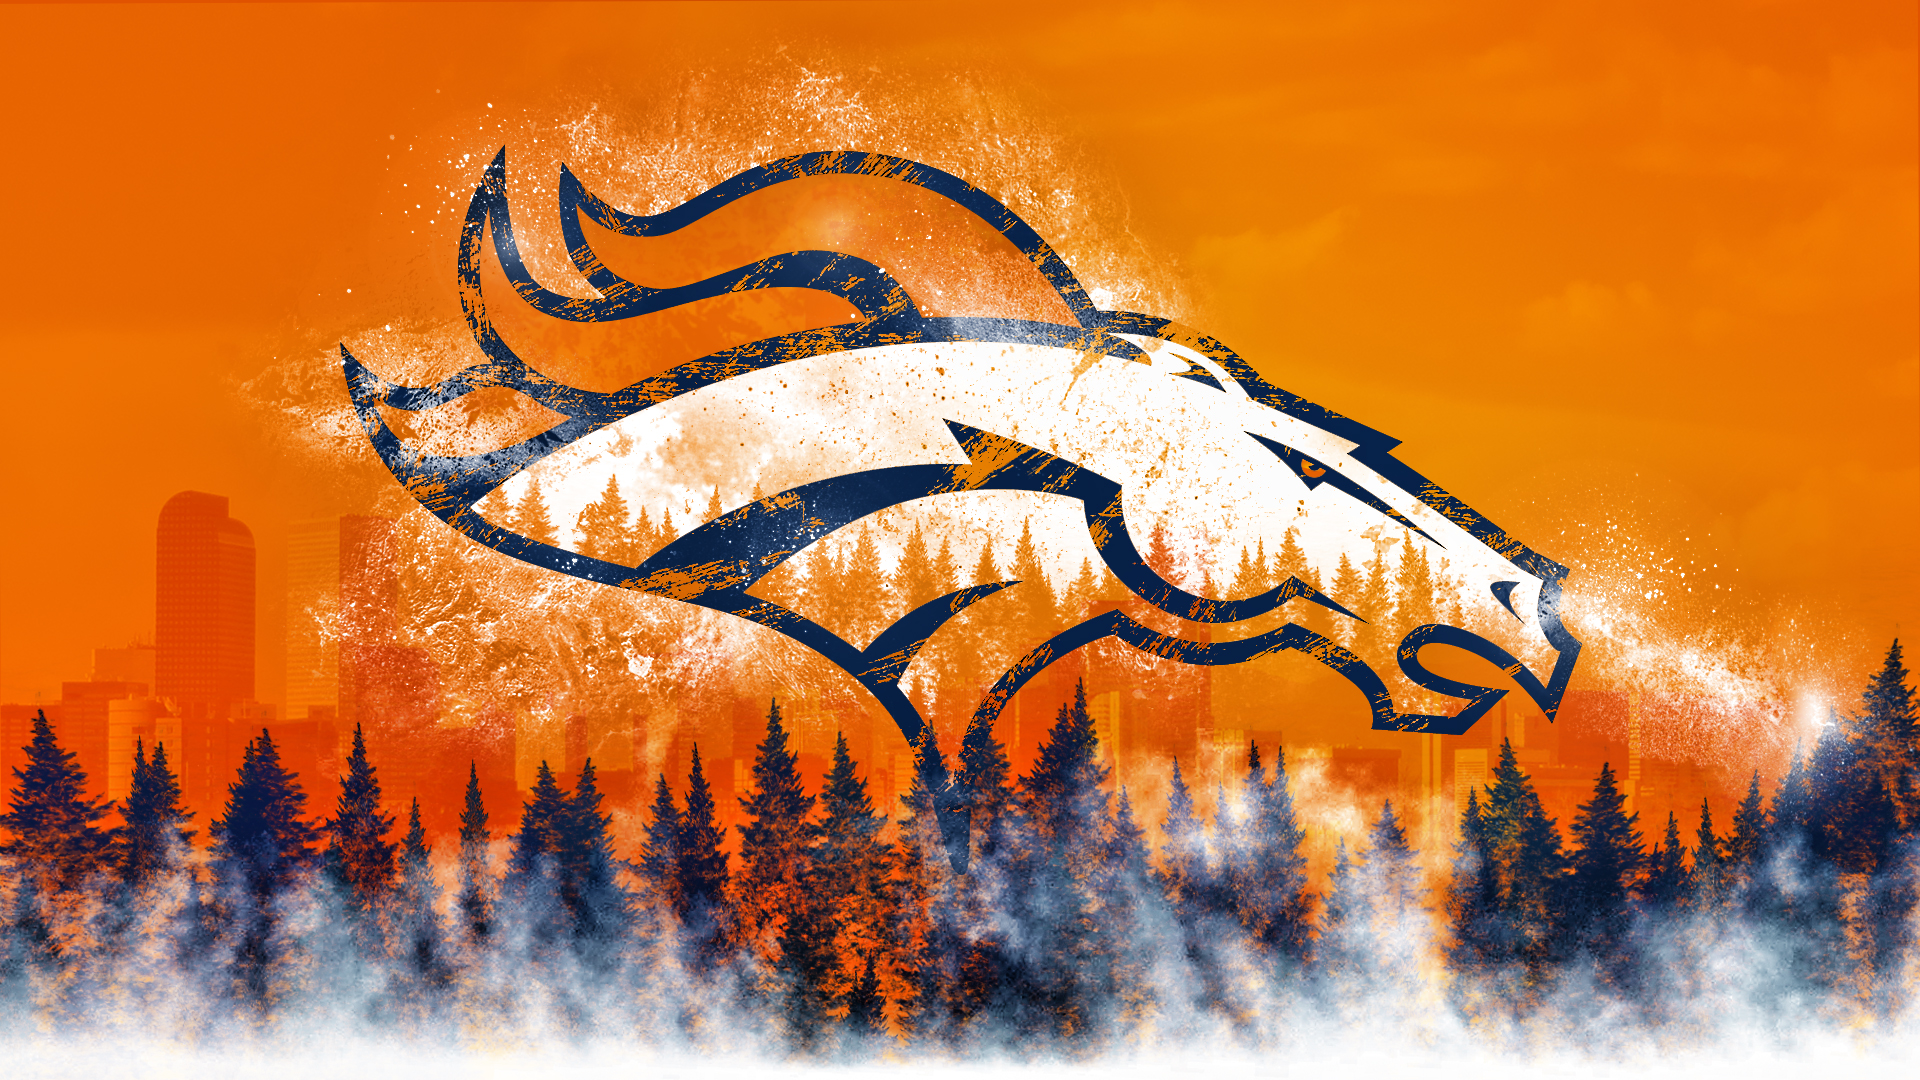 Housh 39 s wallpaper gallery page 8 - Denver broncos background ...